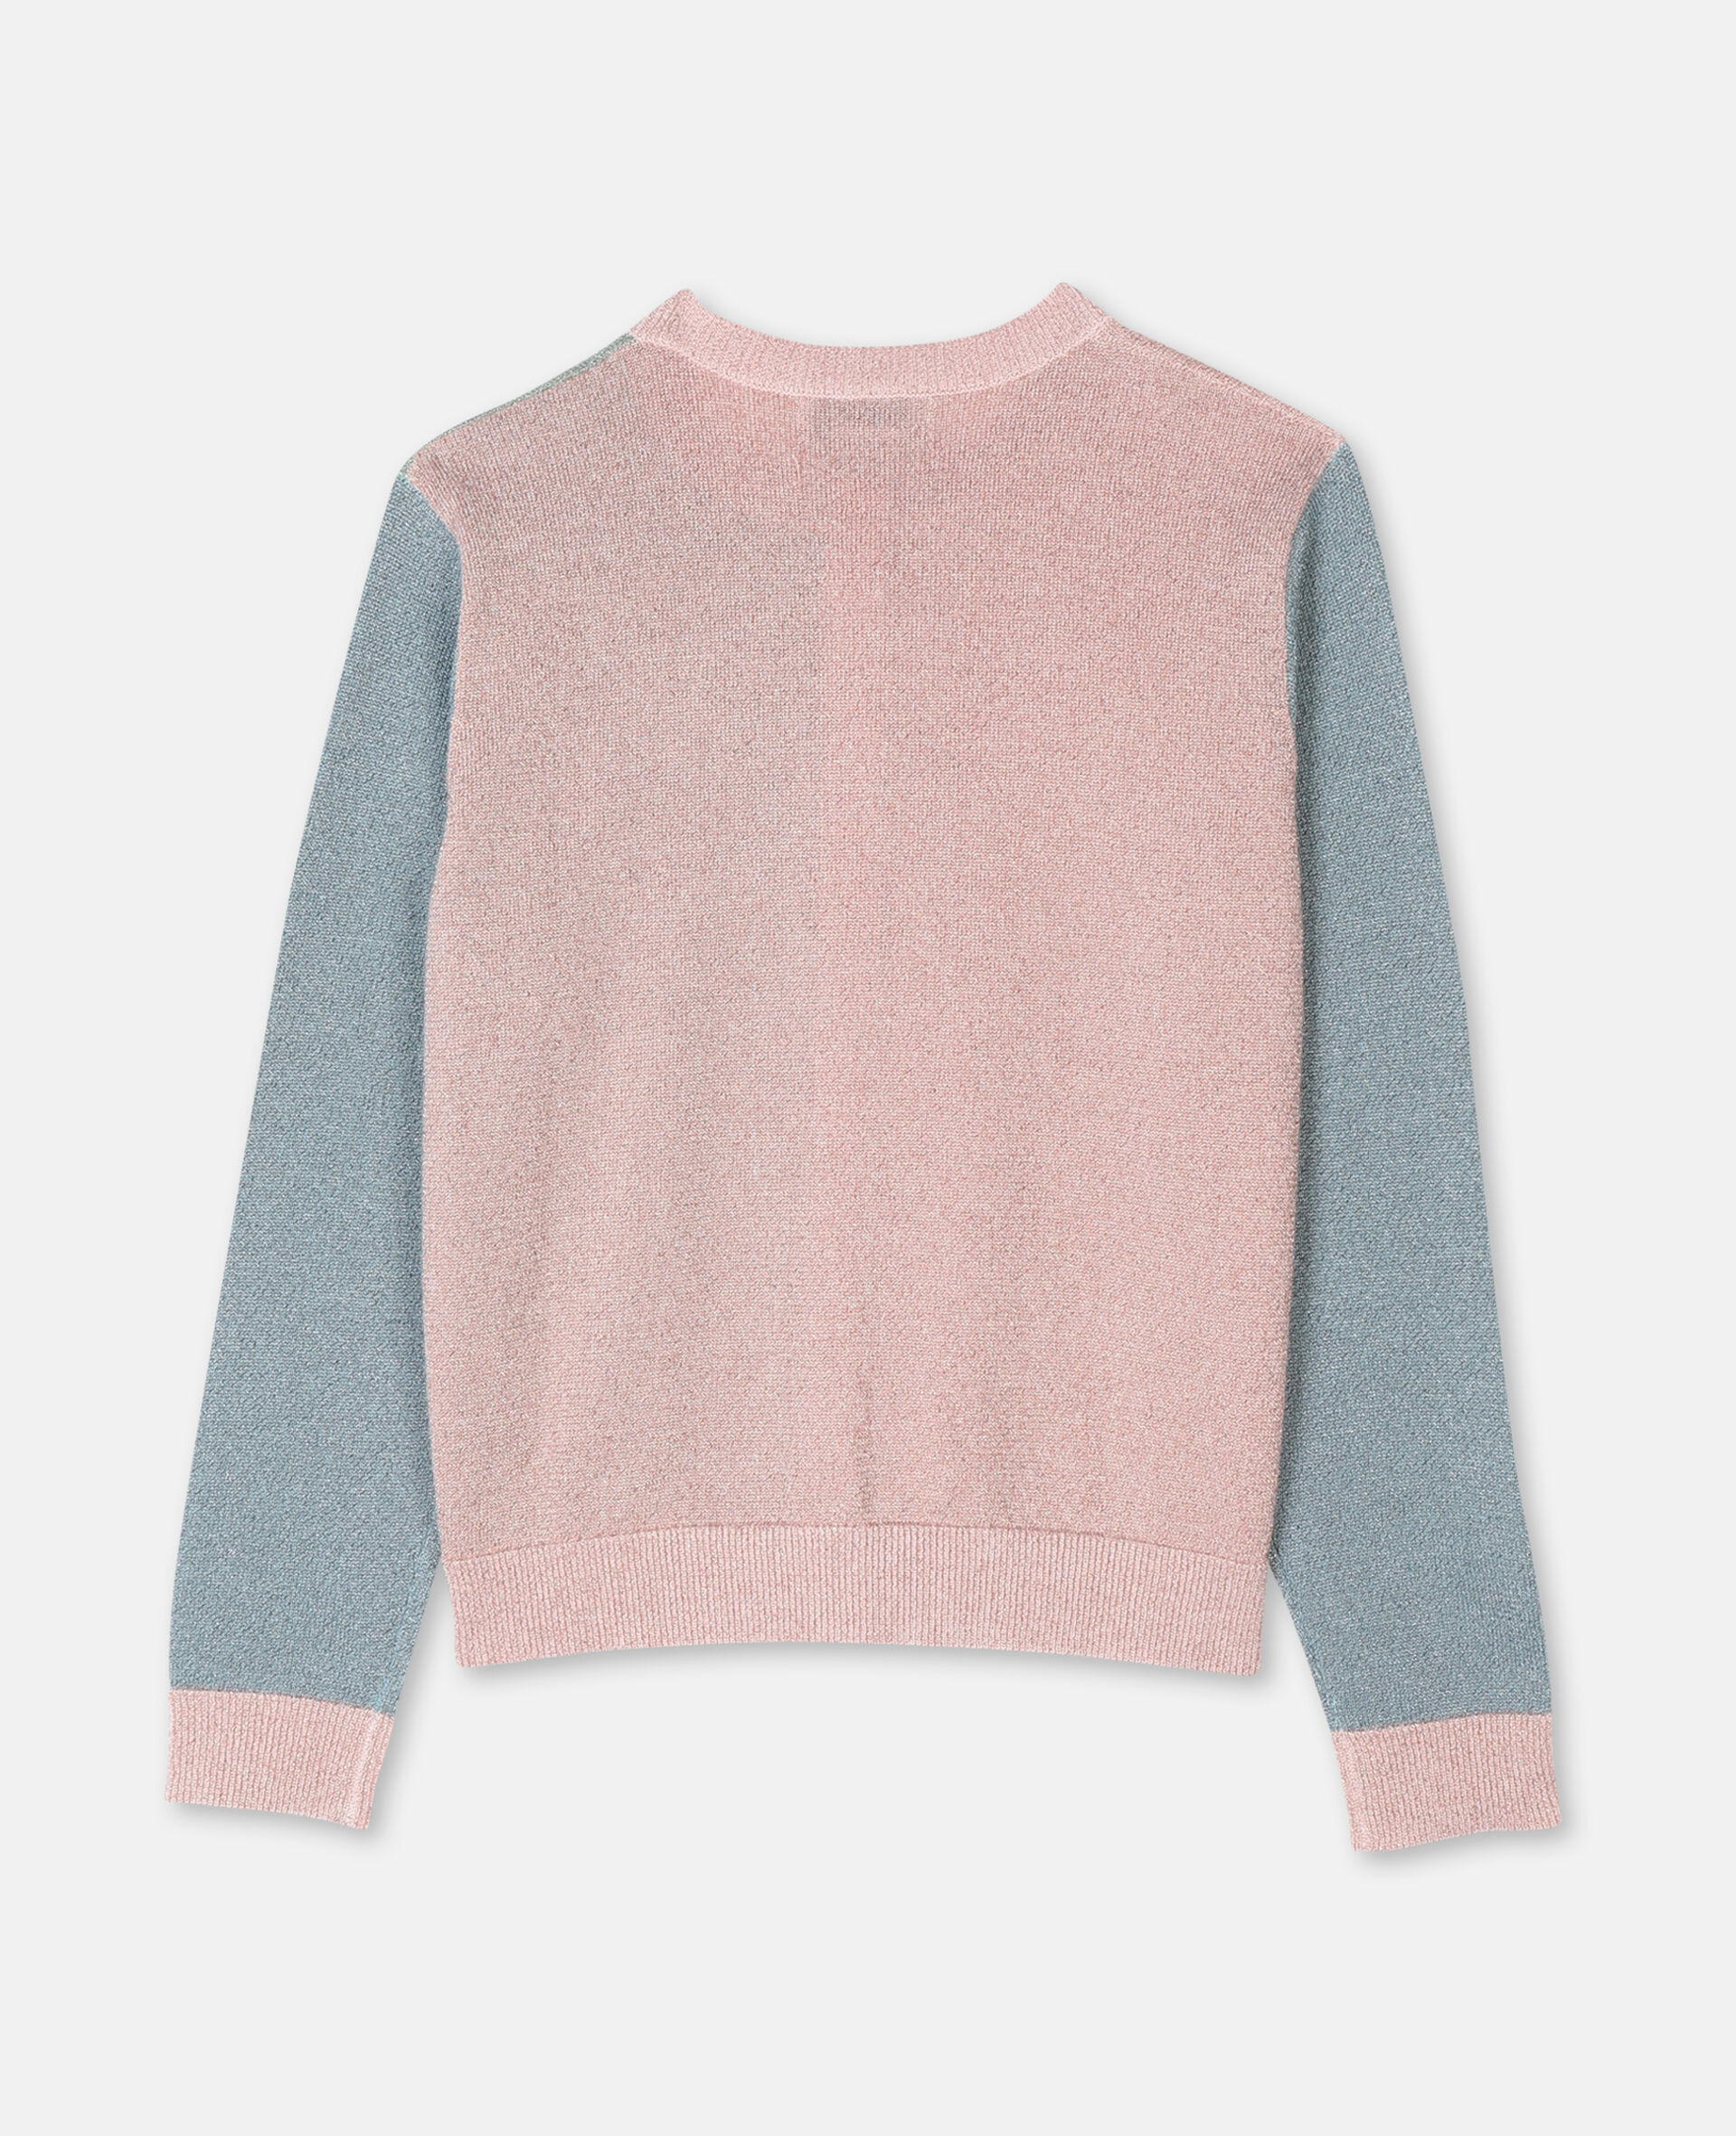 Multicolour Knit Cardigan -Pink-large image number 3